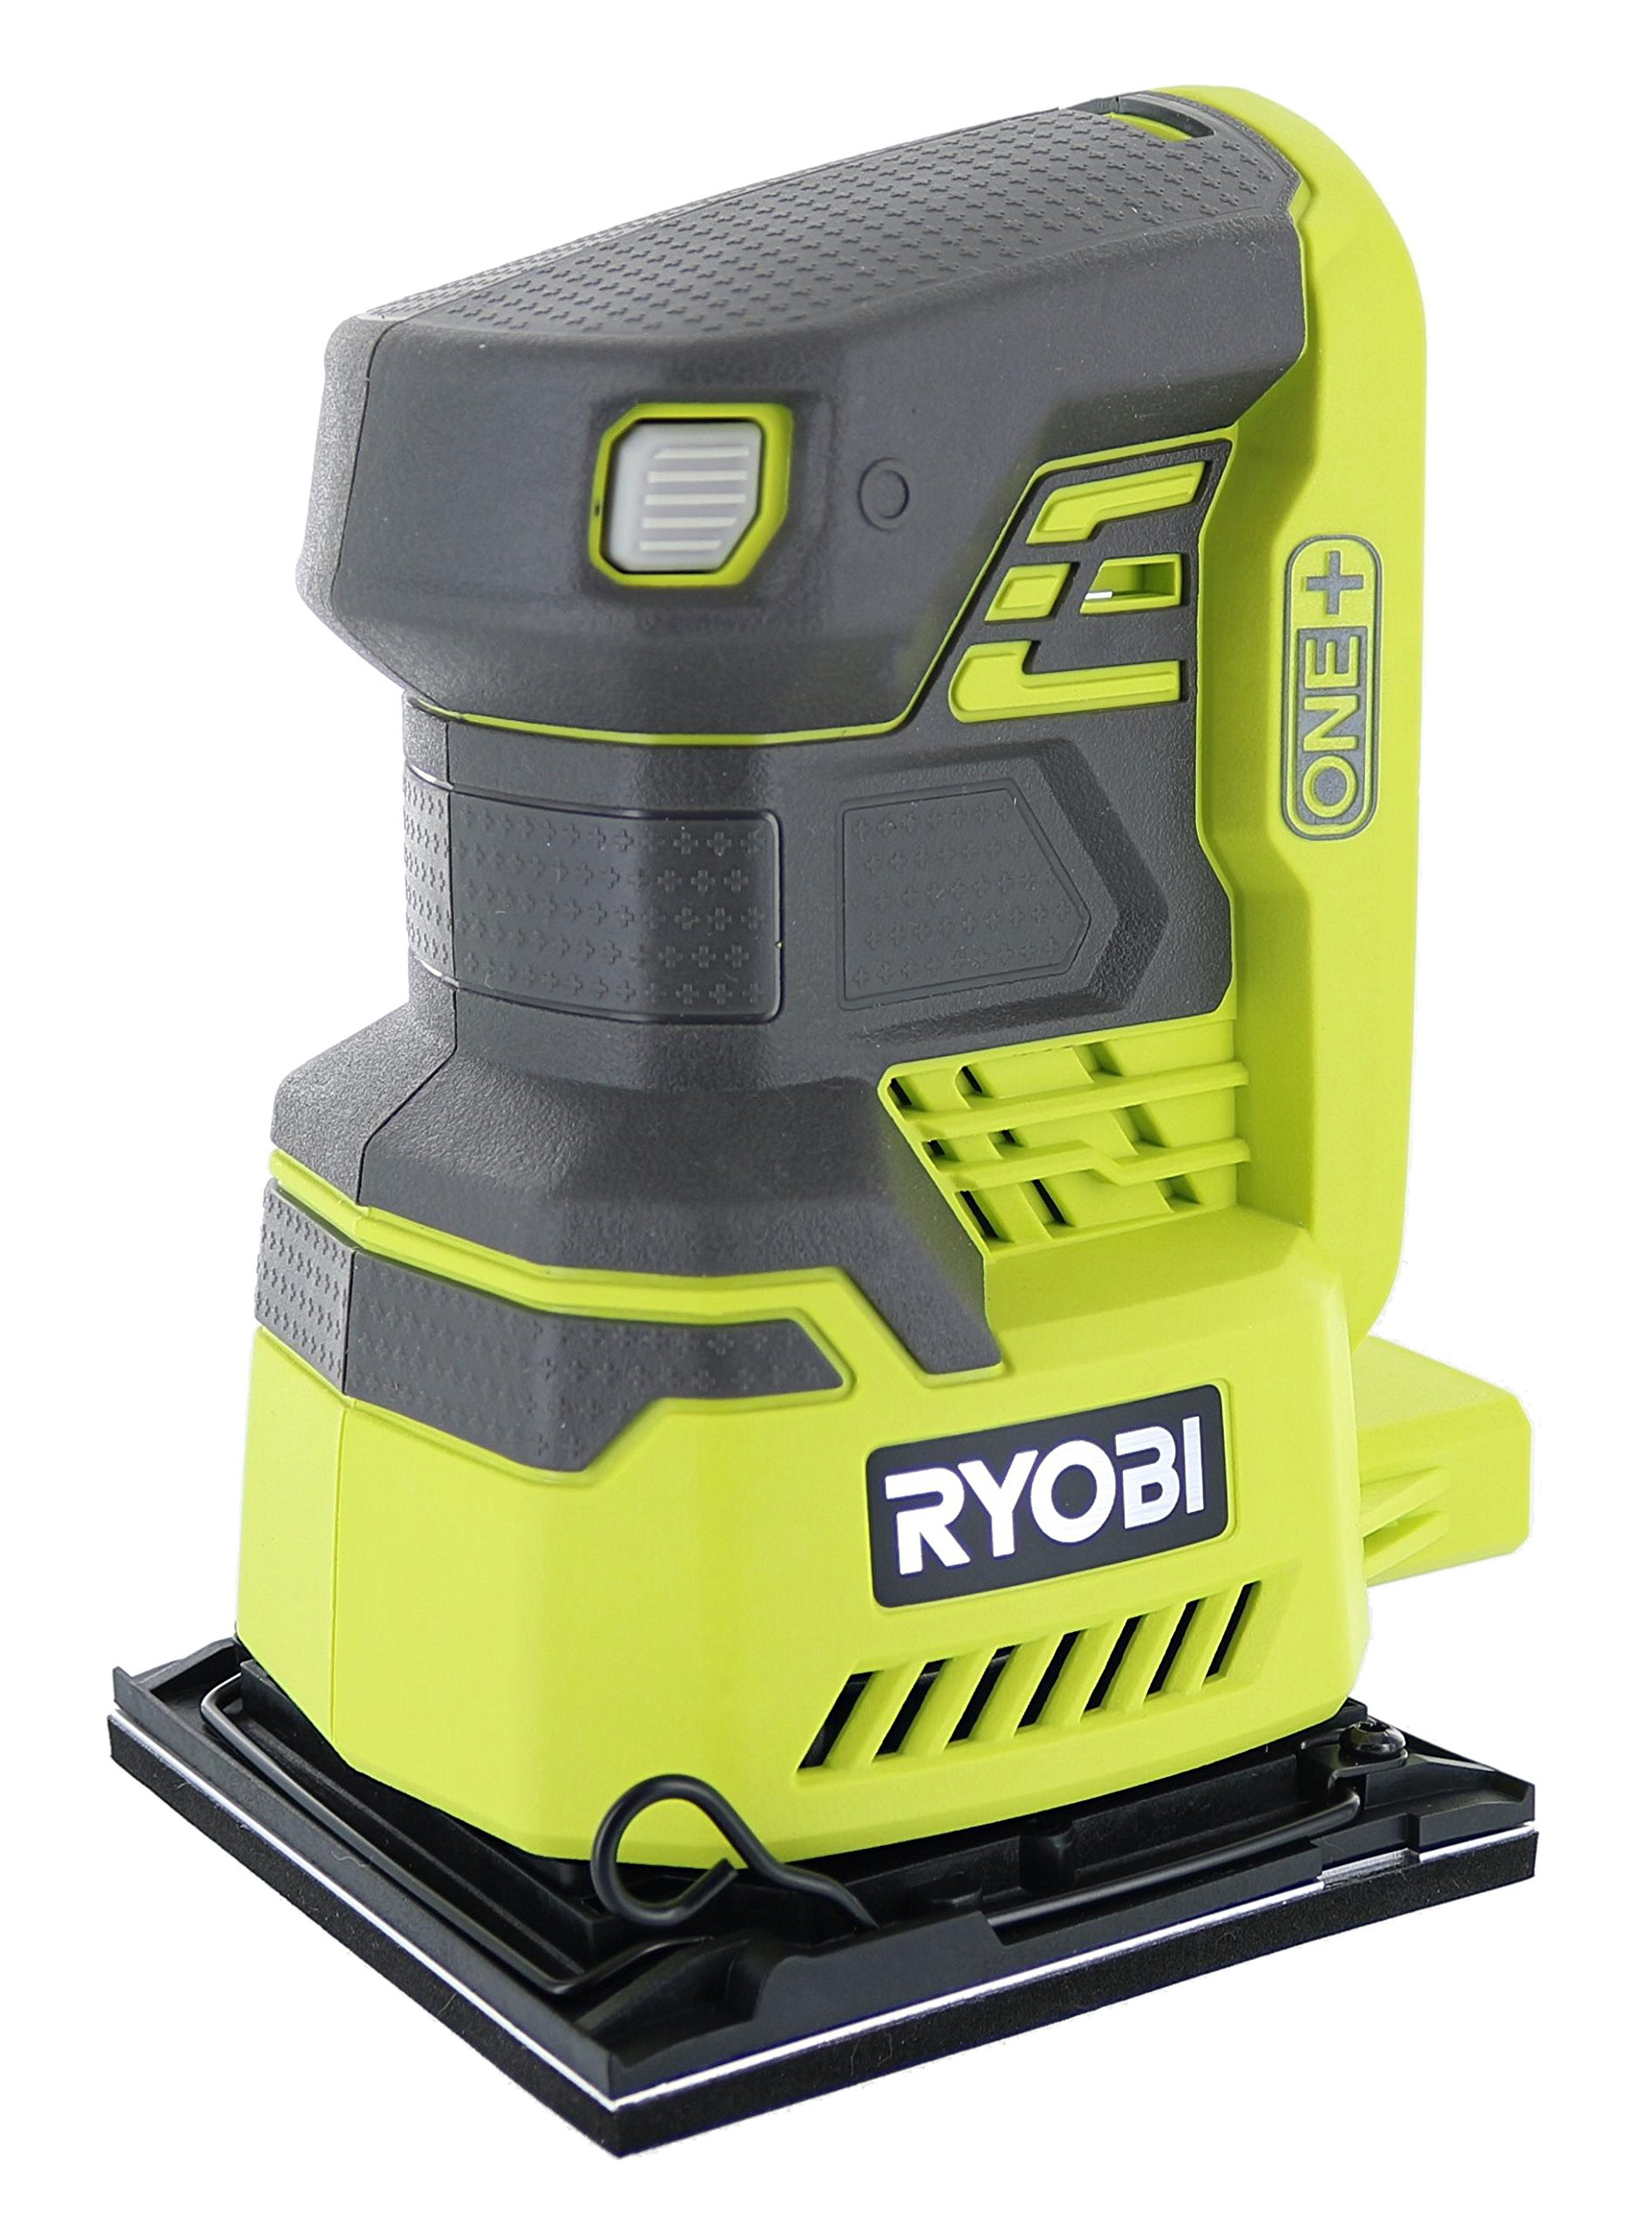 Ryobi P440 One+ 18V Lithium Ion 12,000 RPM 1/4 Sheet Palm Sander w/ Onboard Dust Bag and Included Sanding Pads (Battery Not Included, Power Tool Only)